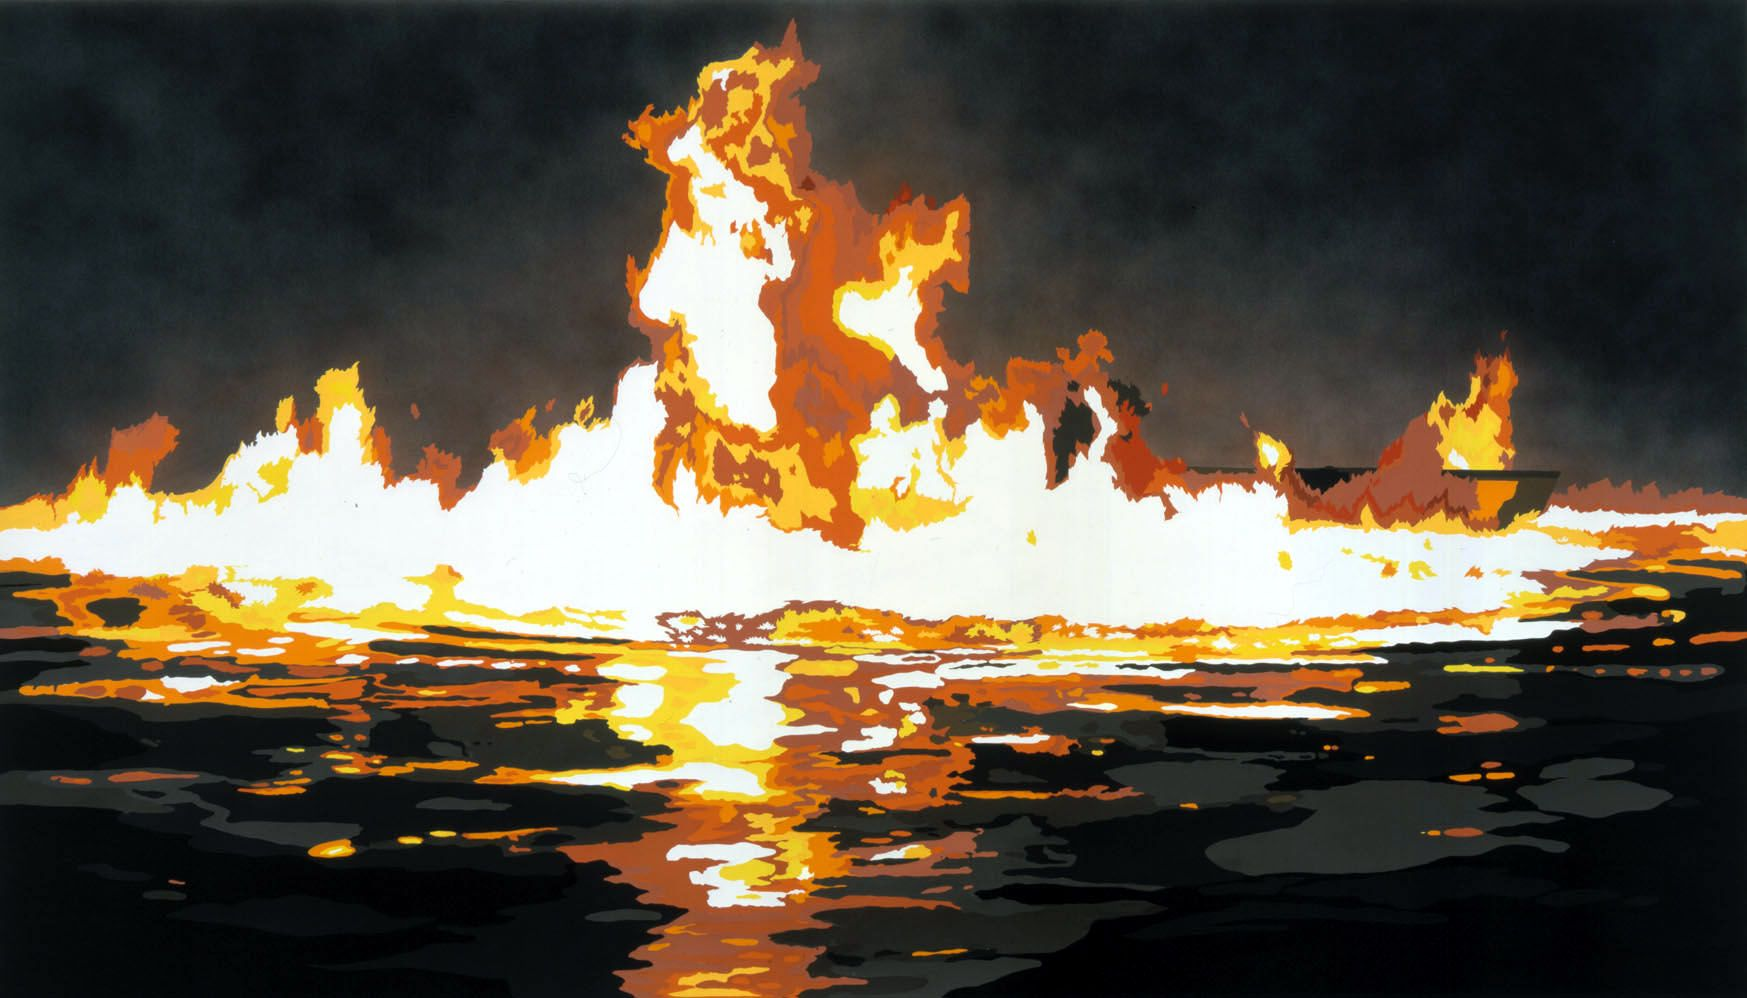 Fire and water by Francesca Gabbiani